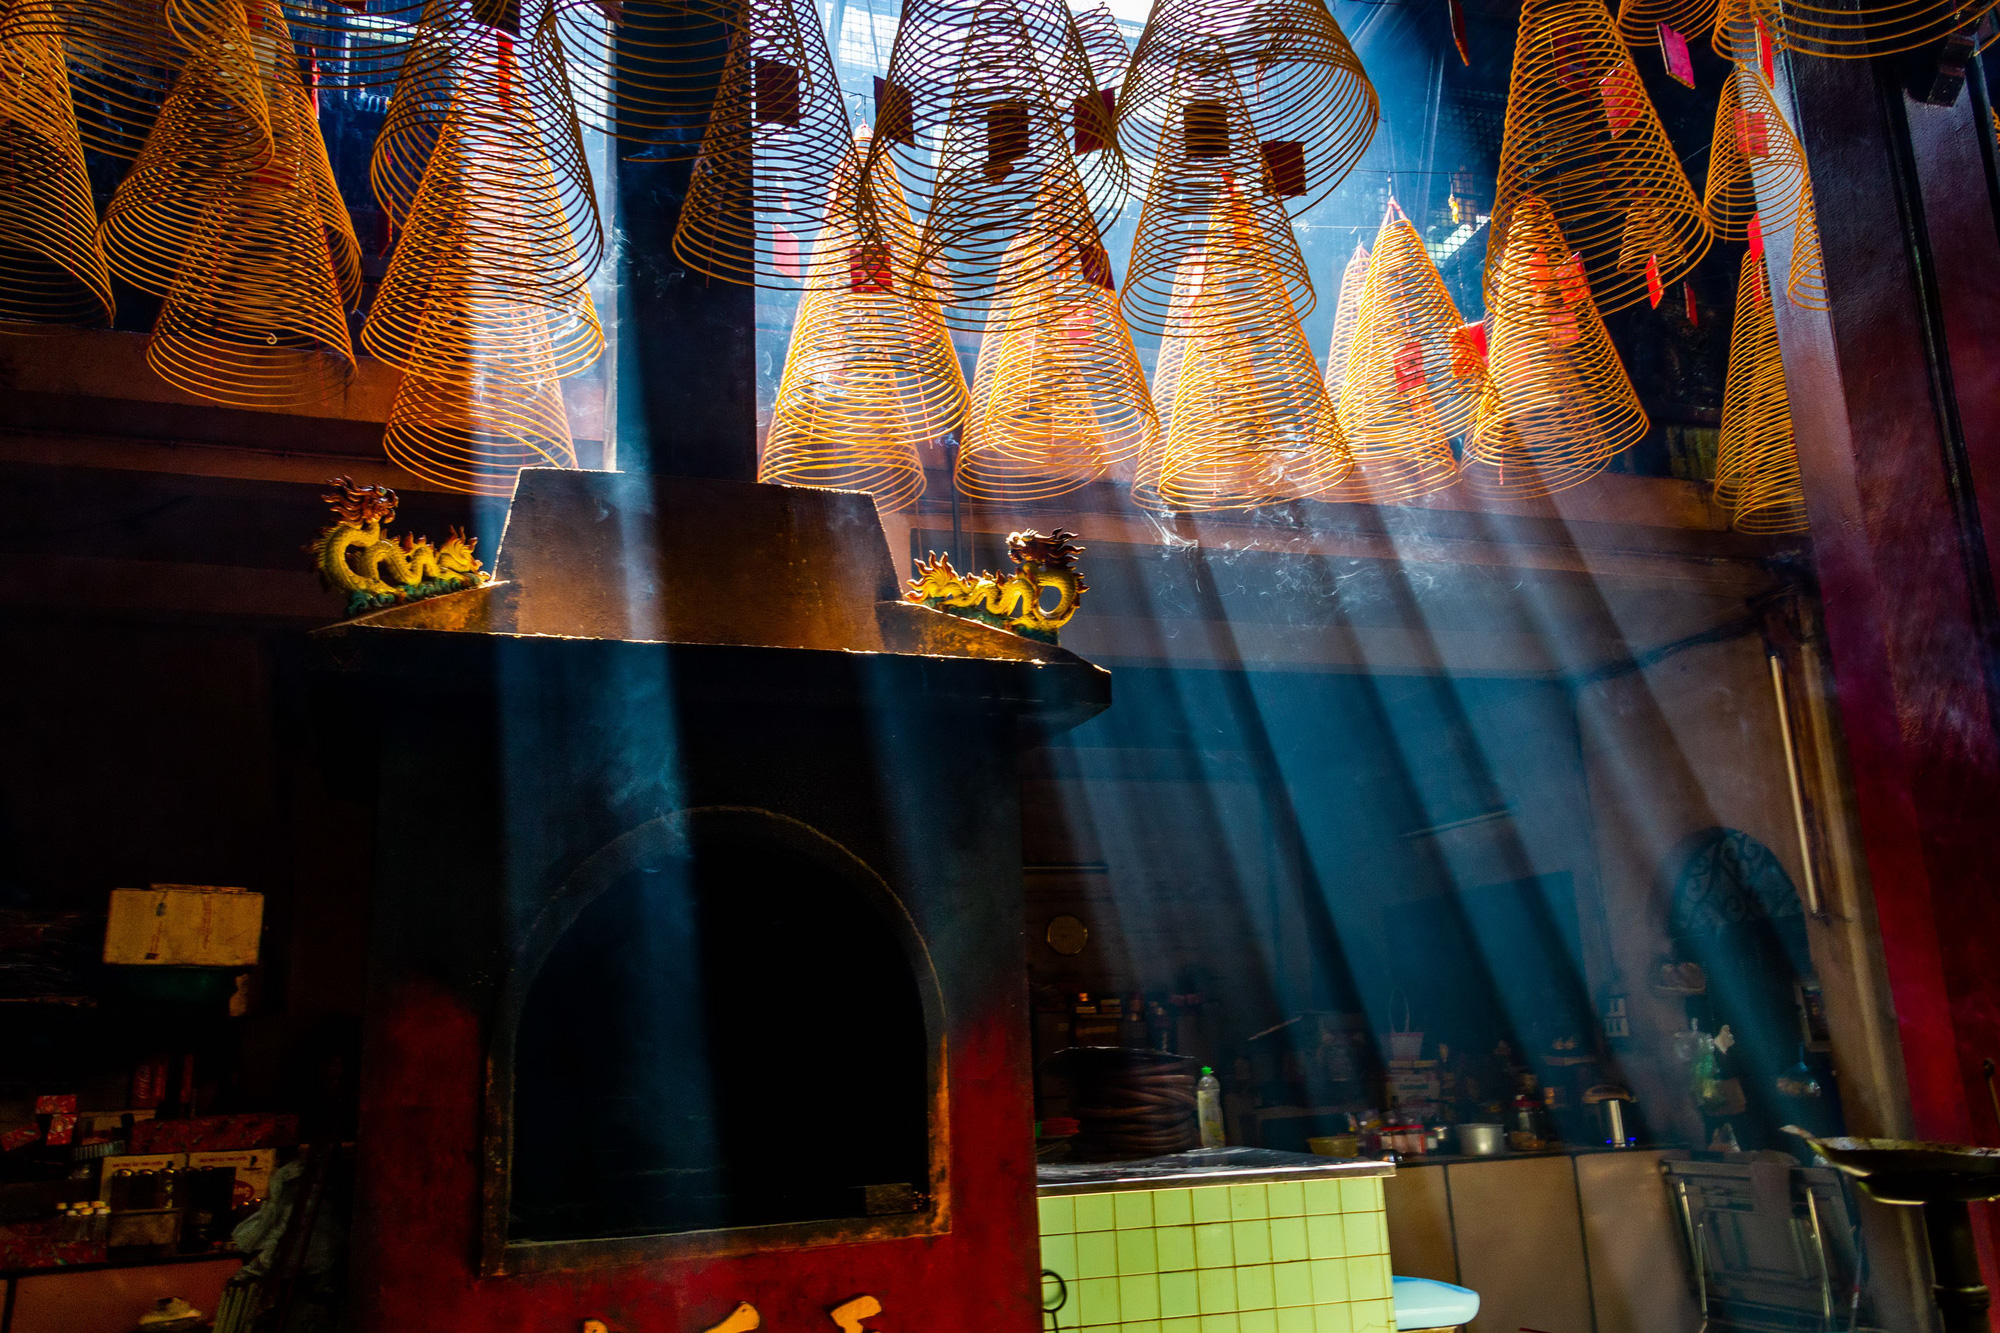 Light shines through coil incense inside the Chinese-style Thien Hau Temple, located on Nguyen Trai Street, District 5, Ho Chi Minh City, Vietnam. Photo: Tran Hong Ngoc / Tuoi Tre